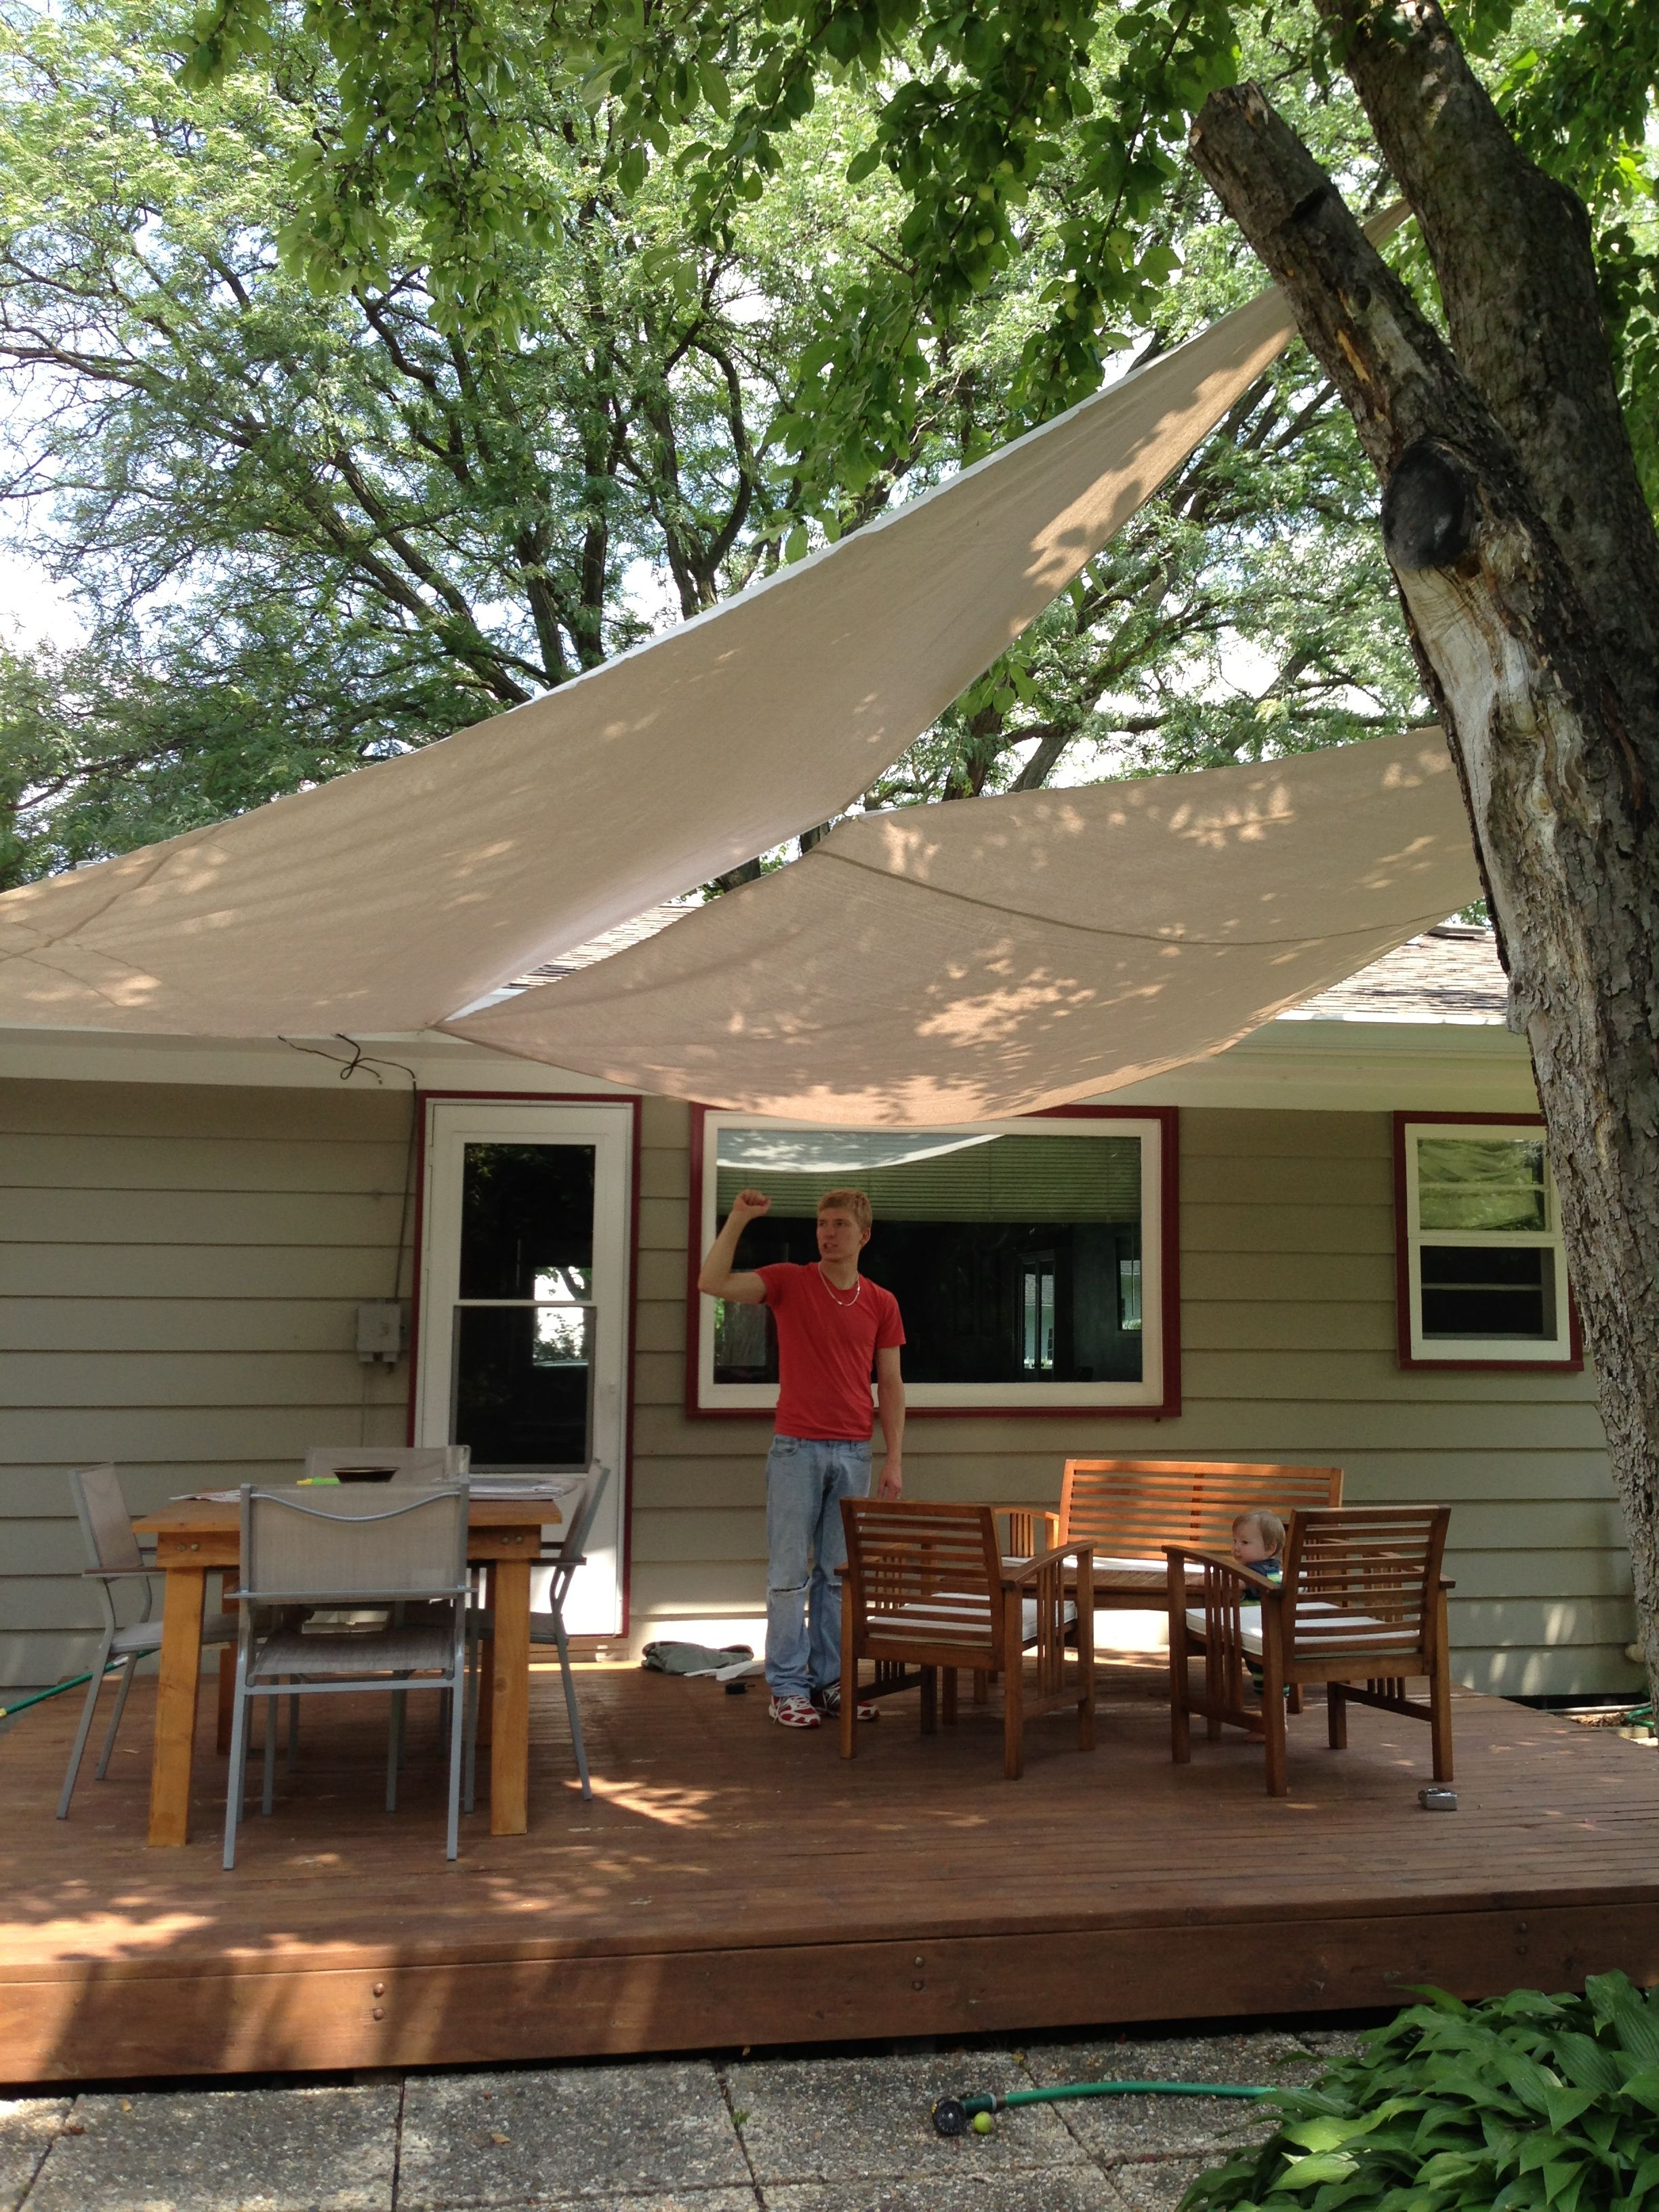 DIY Deck Awning With Painters Drop Cloth Canvas Grommets And Eye Screws